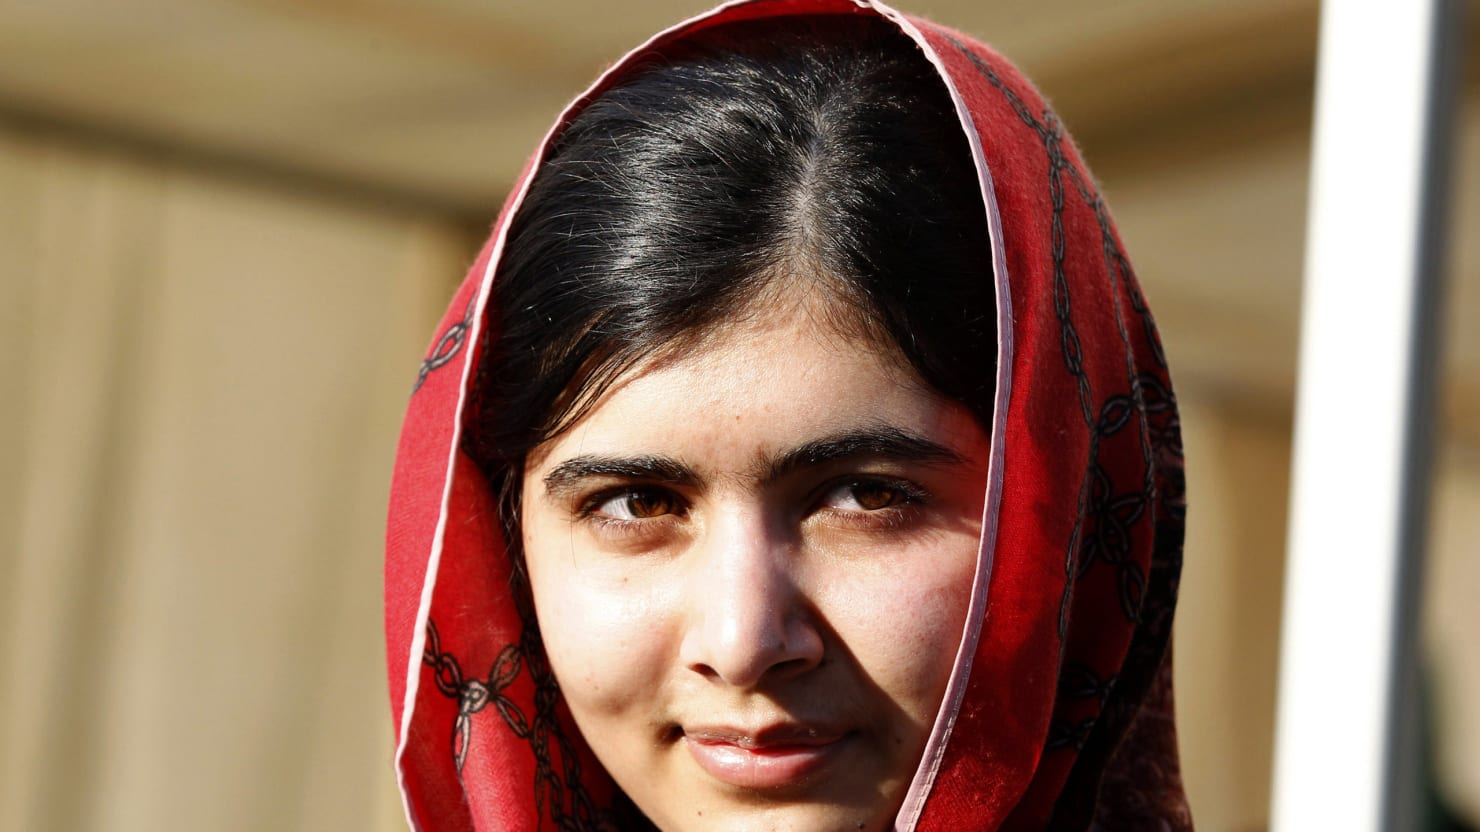 Malala Yousafzai Is the Youngest Nobel Peace Prize Winner in History